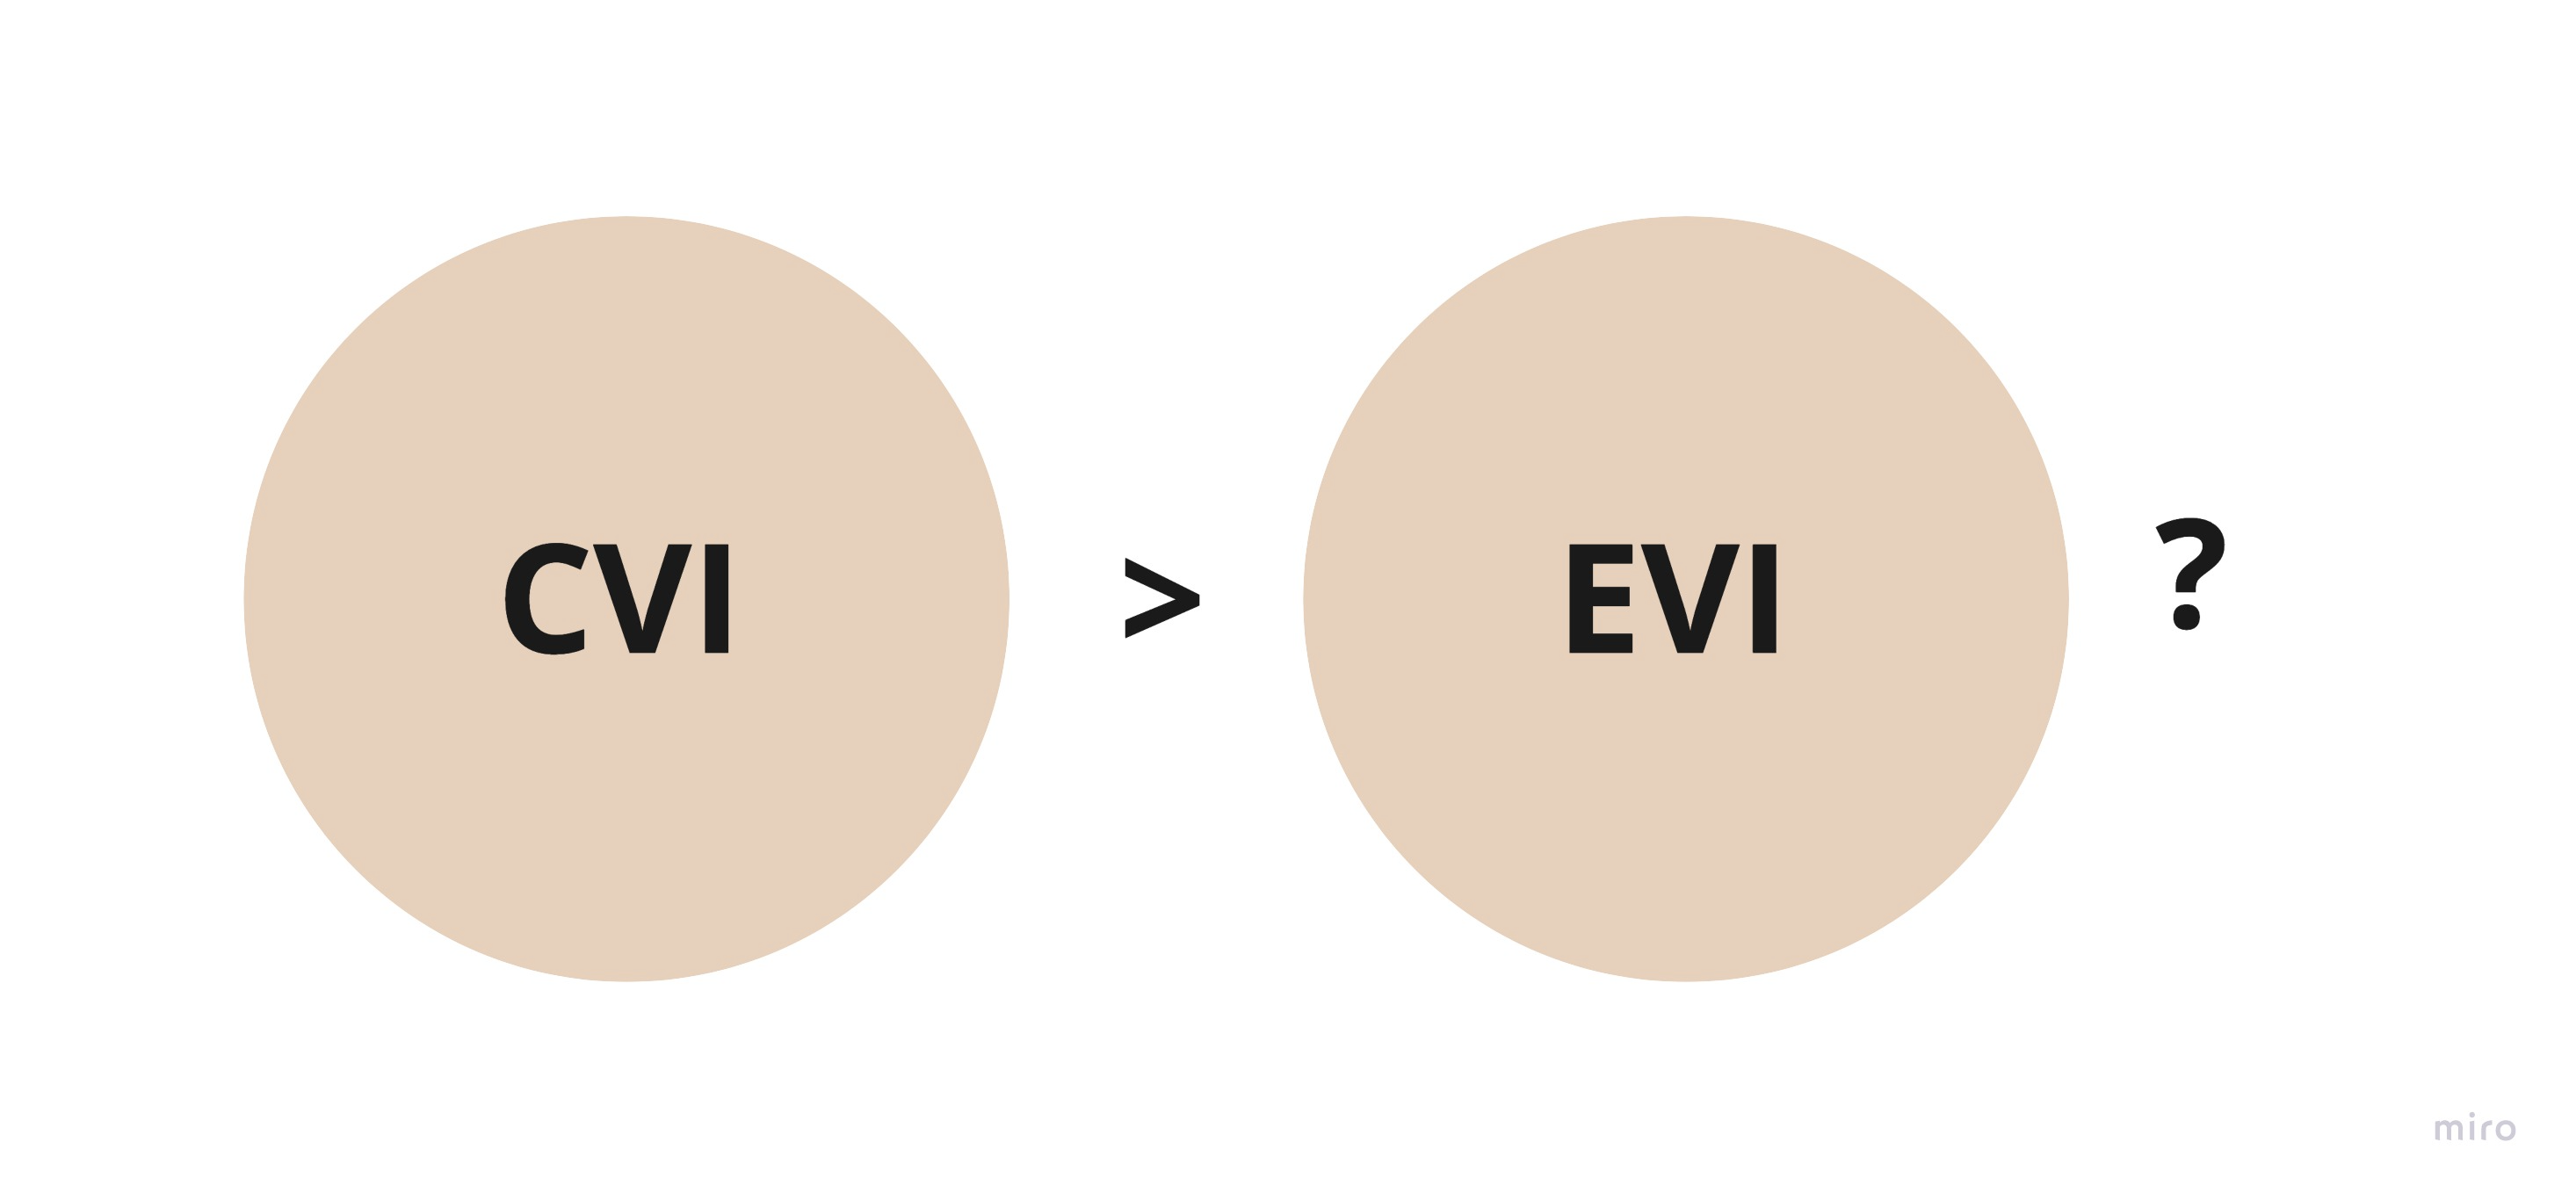 Is CVI greater than EVI?